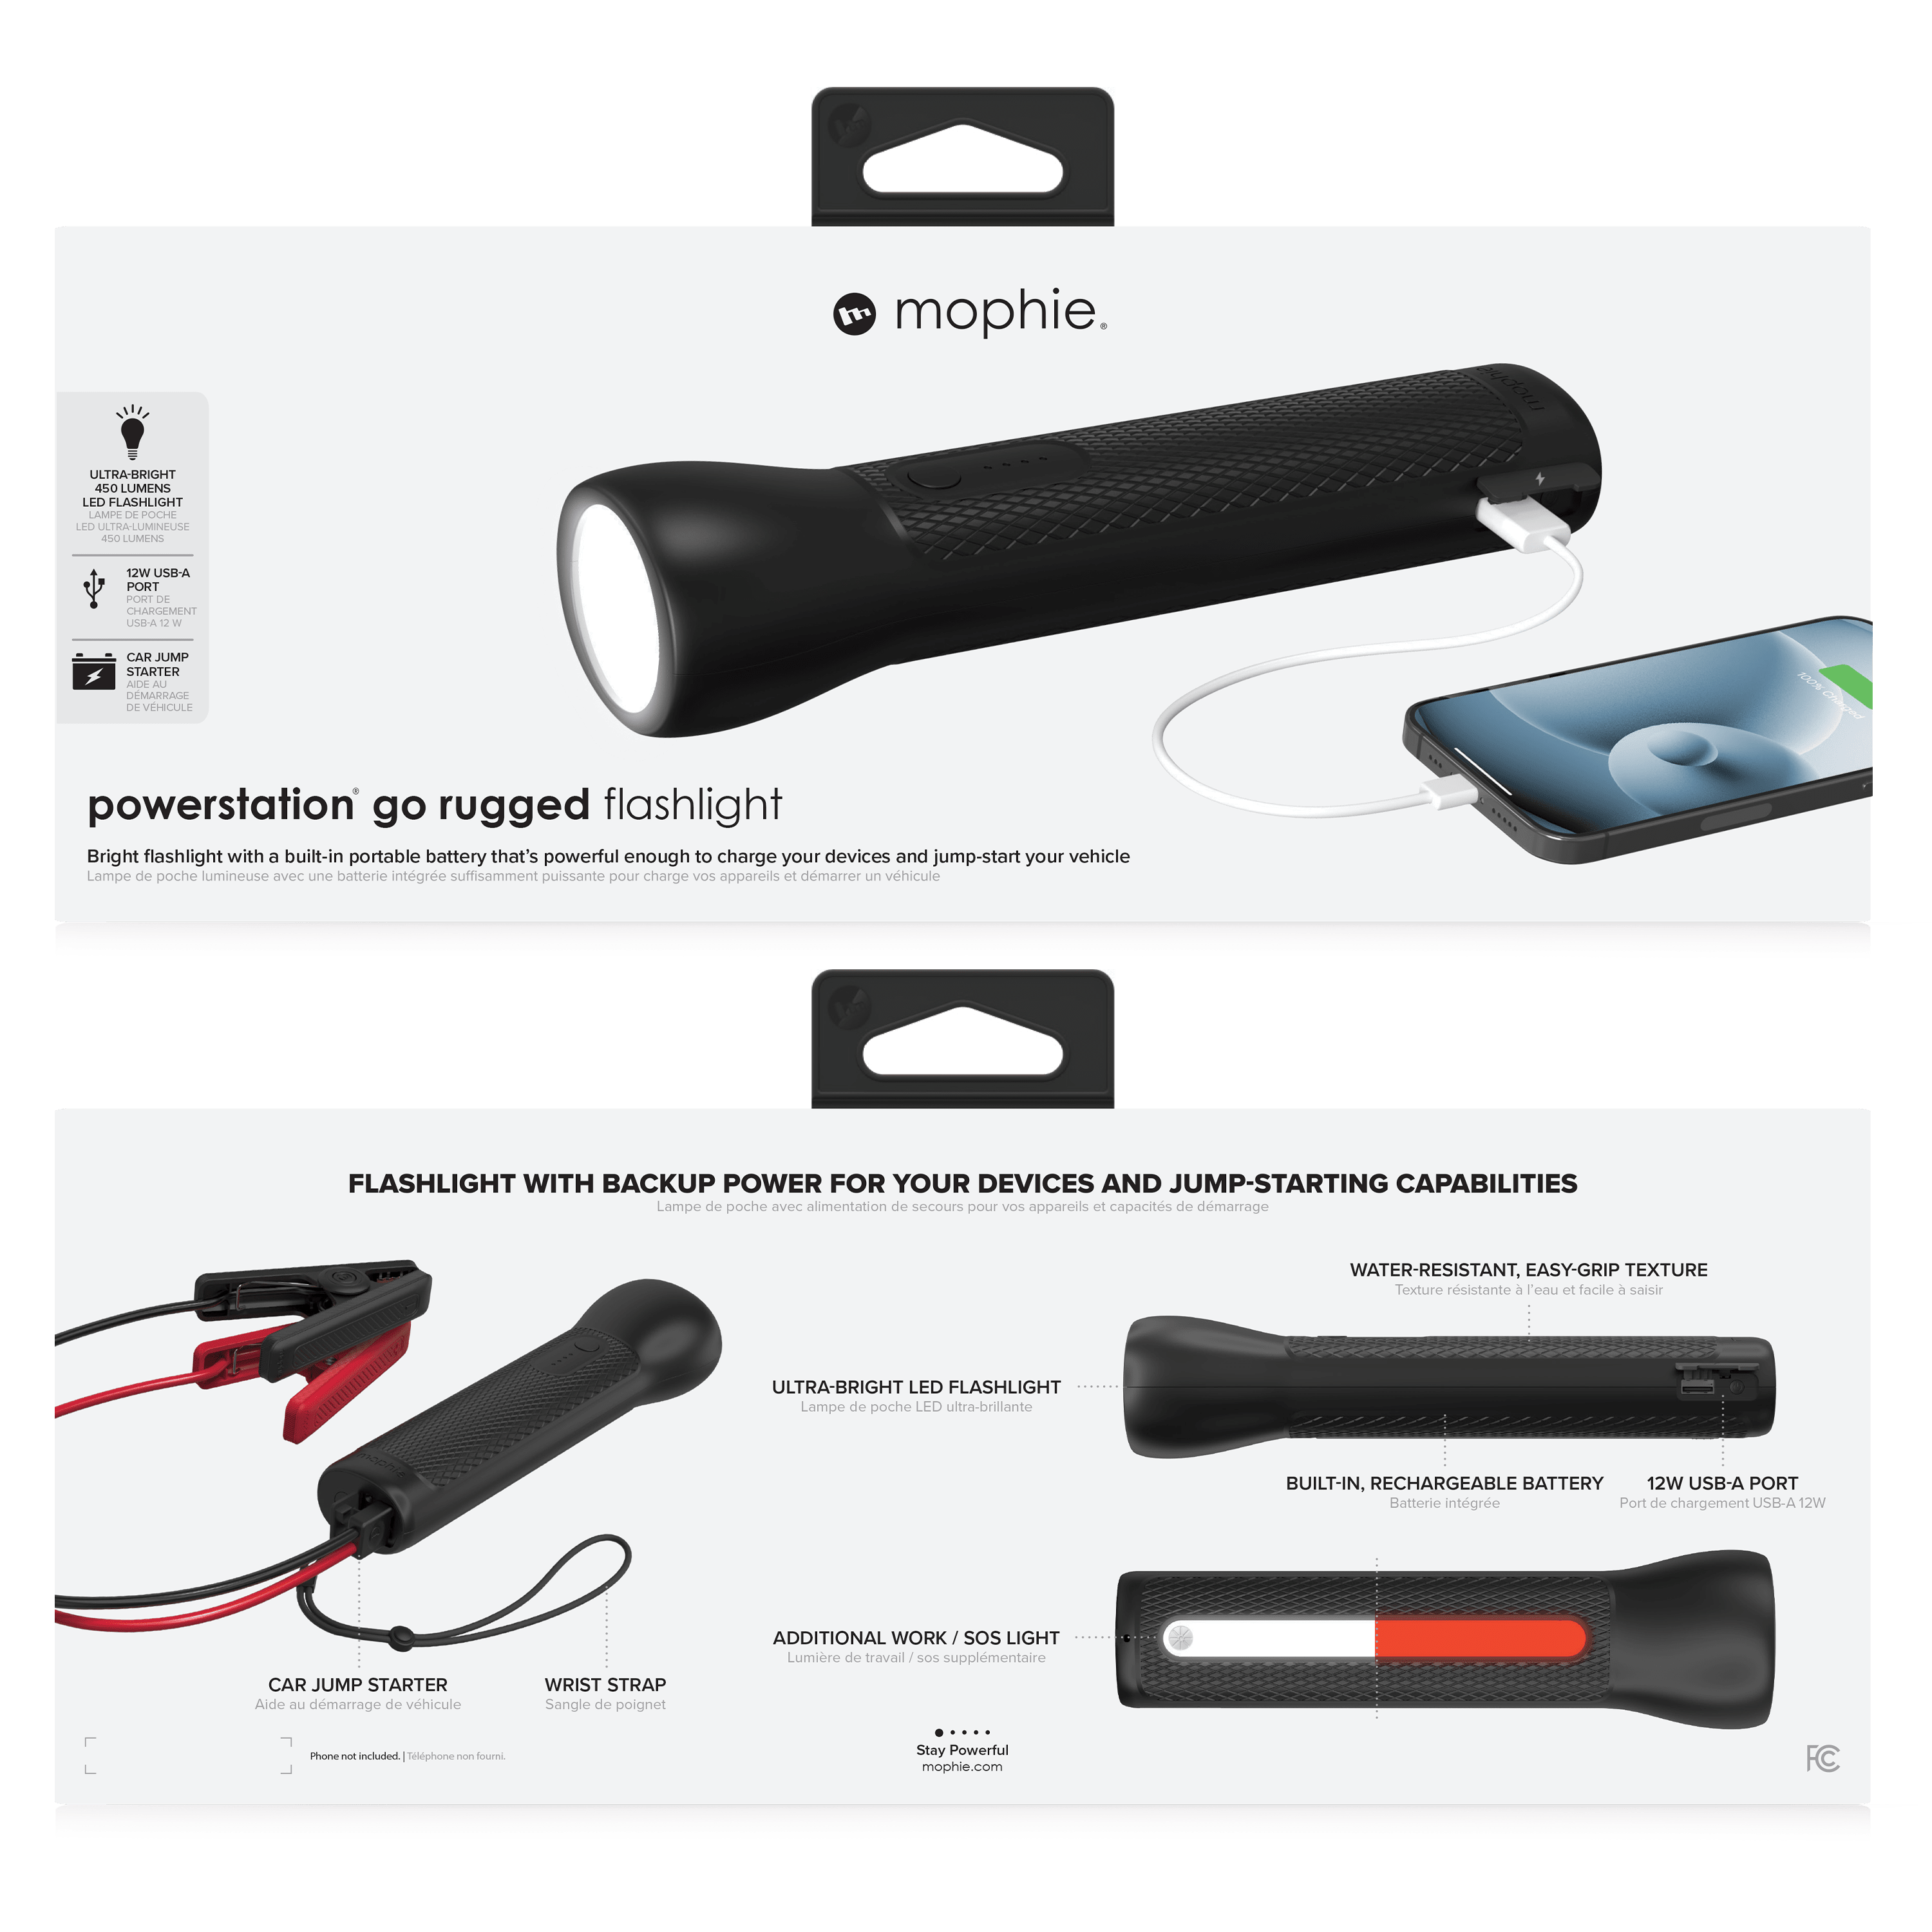 Wholesale cell phone accessory mophie - Powerstation Go Rugged Flashlight Power Bank 9,900